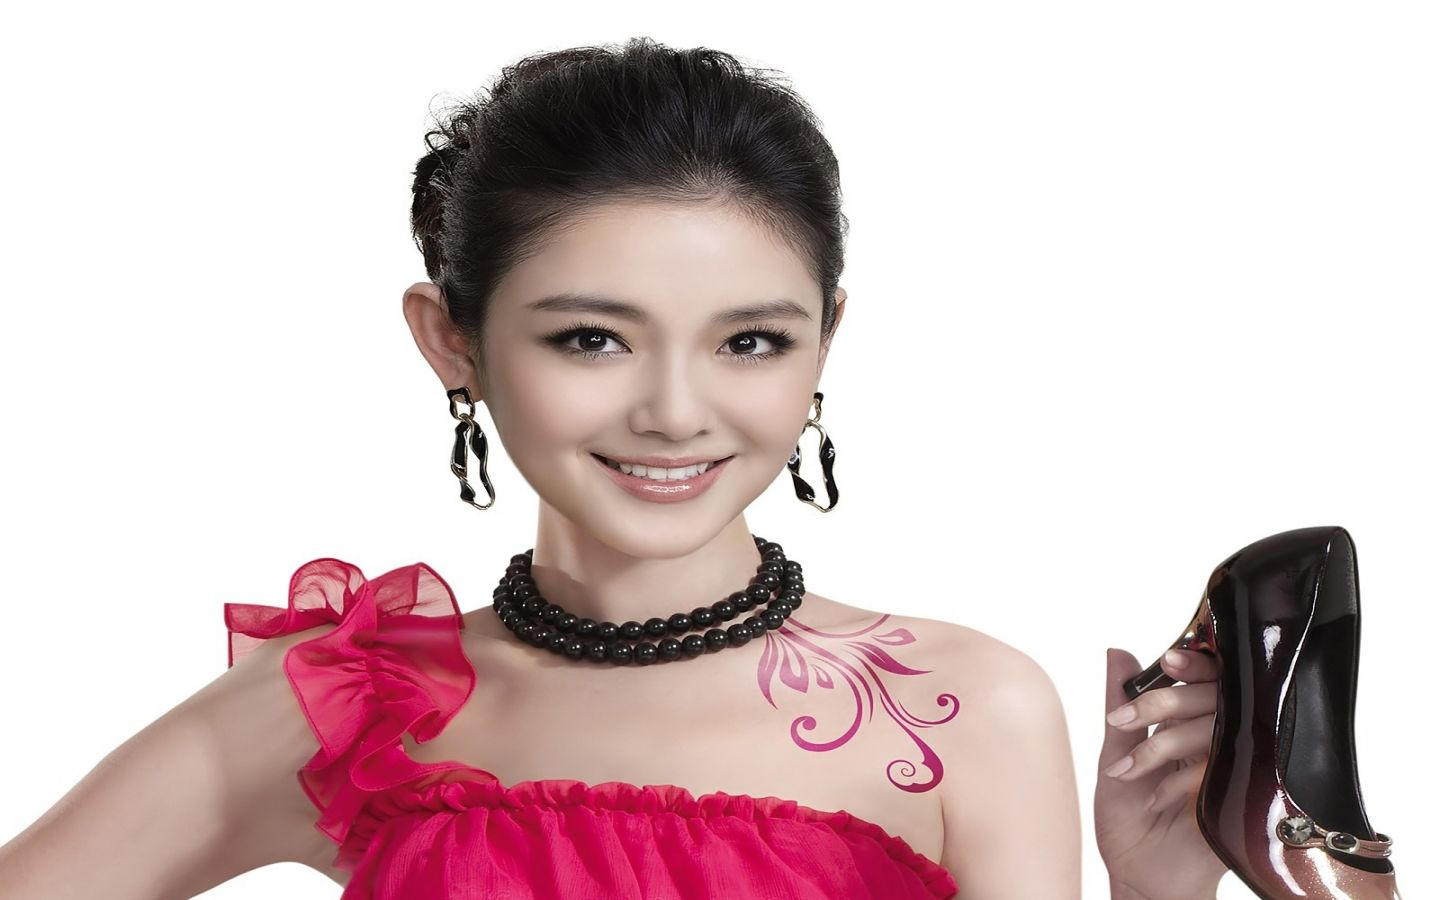 1440x900 - Barbie Hsu Wallpapers 23